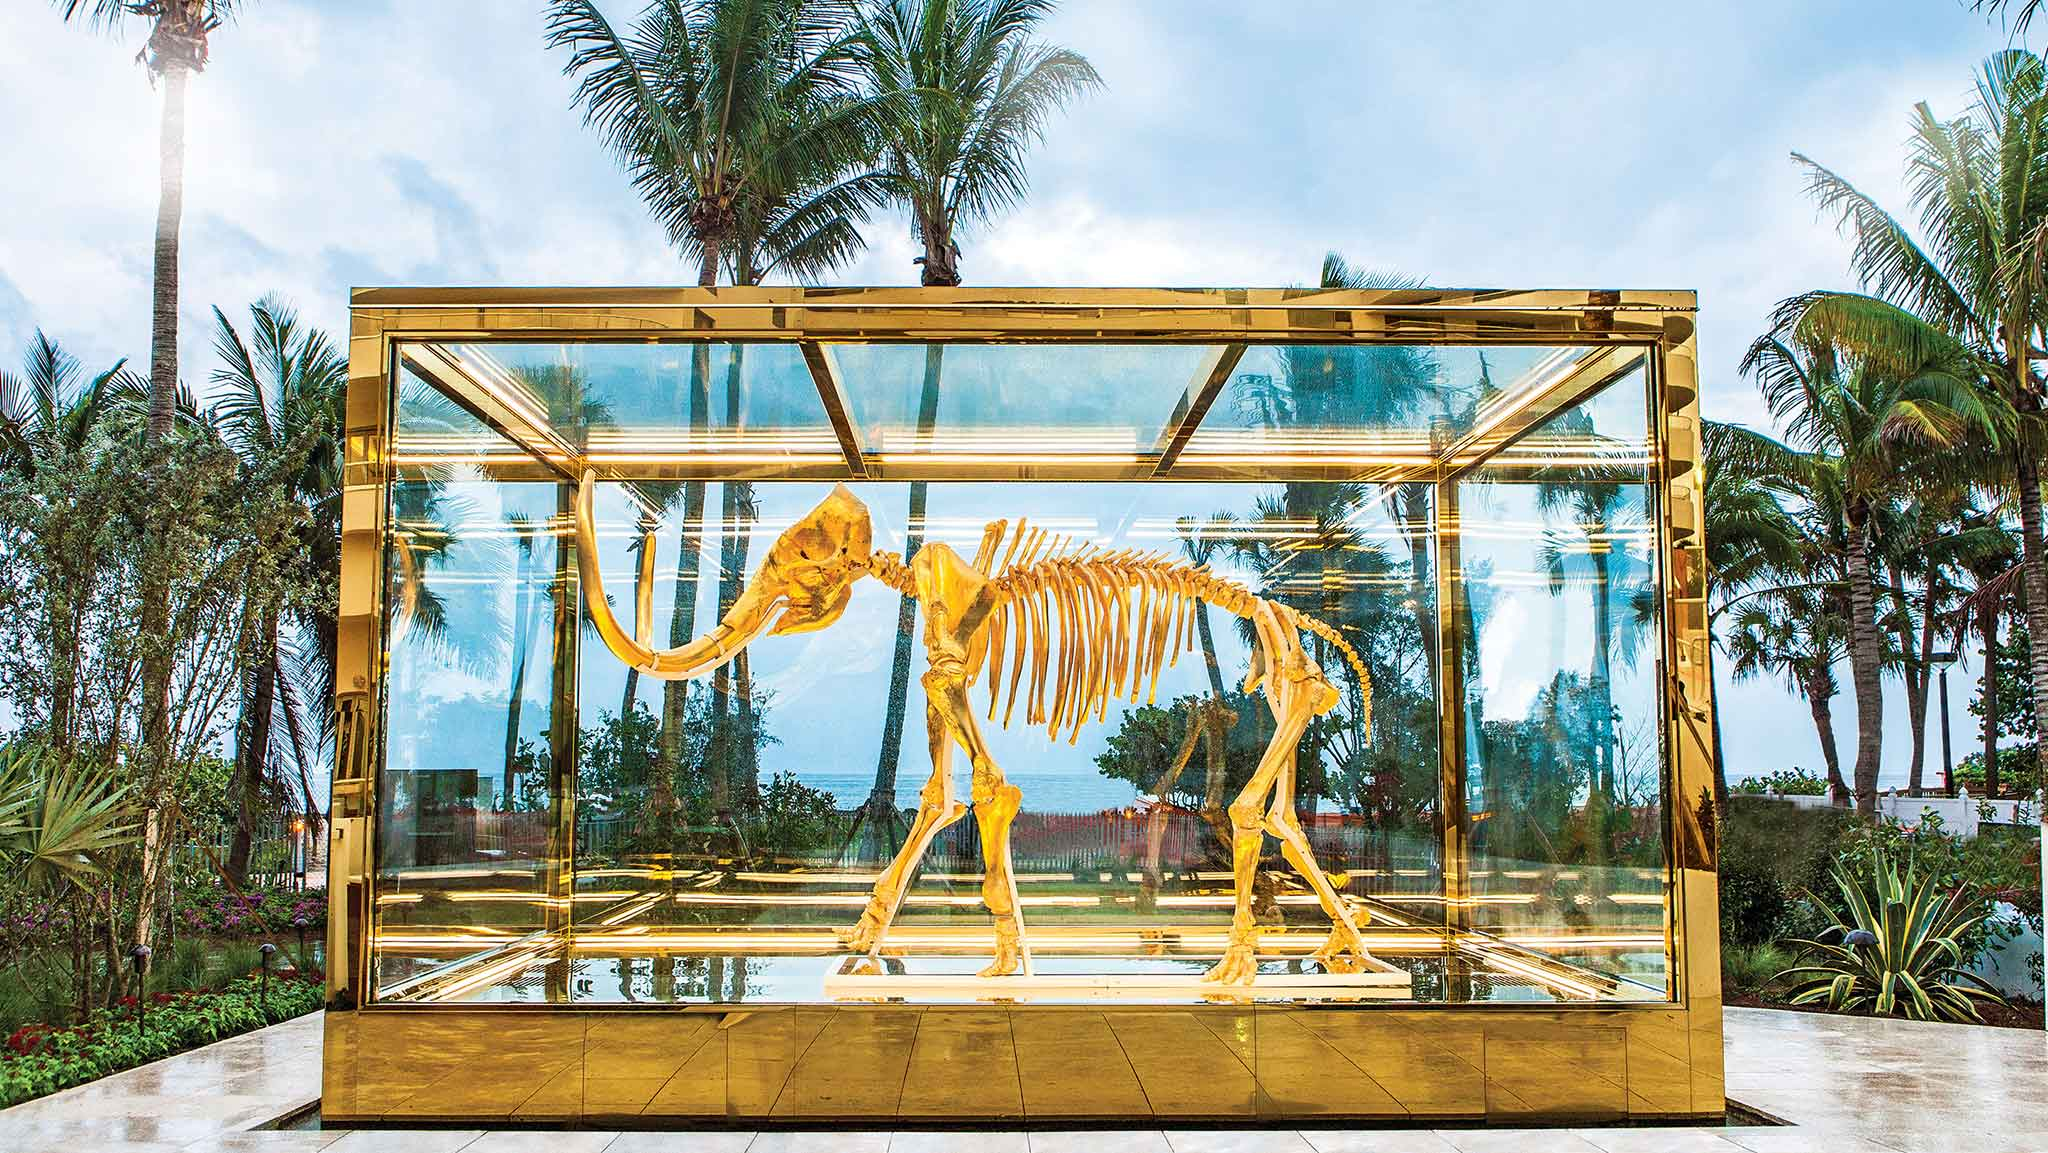 """Faena, Miami   Alan Faena proclaimed,""""It is the future. A unique utopian city for the mind that thinks in 360 degrees"""". He wasn't wrong. Featuring an almighty Damien Hirst gilded woolly mammoth skeleton, Faena's cube-like white artifice is topped with a glazed eye set into its domed ceiling.With plenty of flair from the eccentric director, Baz Luhrmann, and costume designer, Catherine Martin, a stay at the Faena is akin to stepping into a film set. Think outlandish lashings of colour with Juan Gatti's exotic murals adorning the walls – every detail is dramatically pronounced. faena.com"""